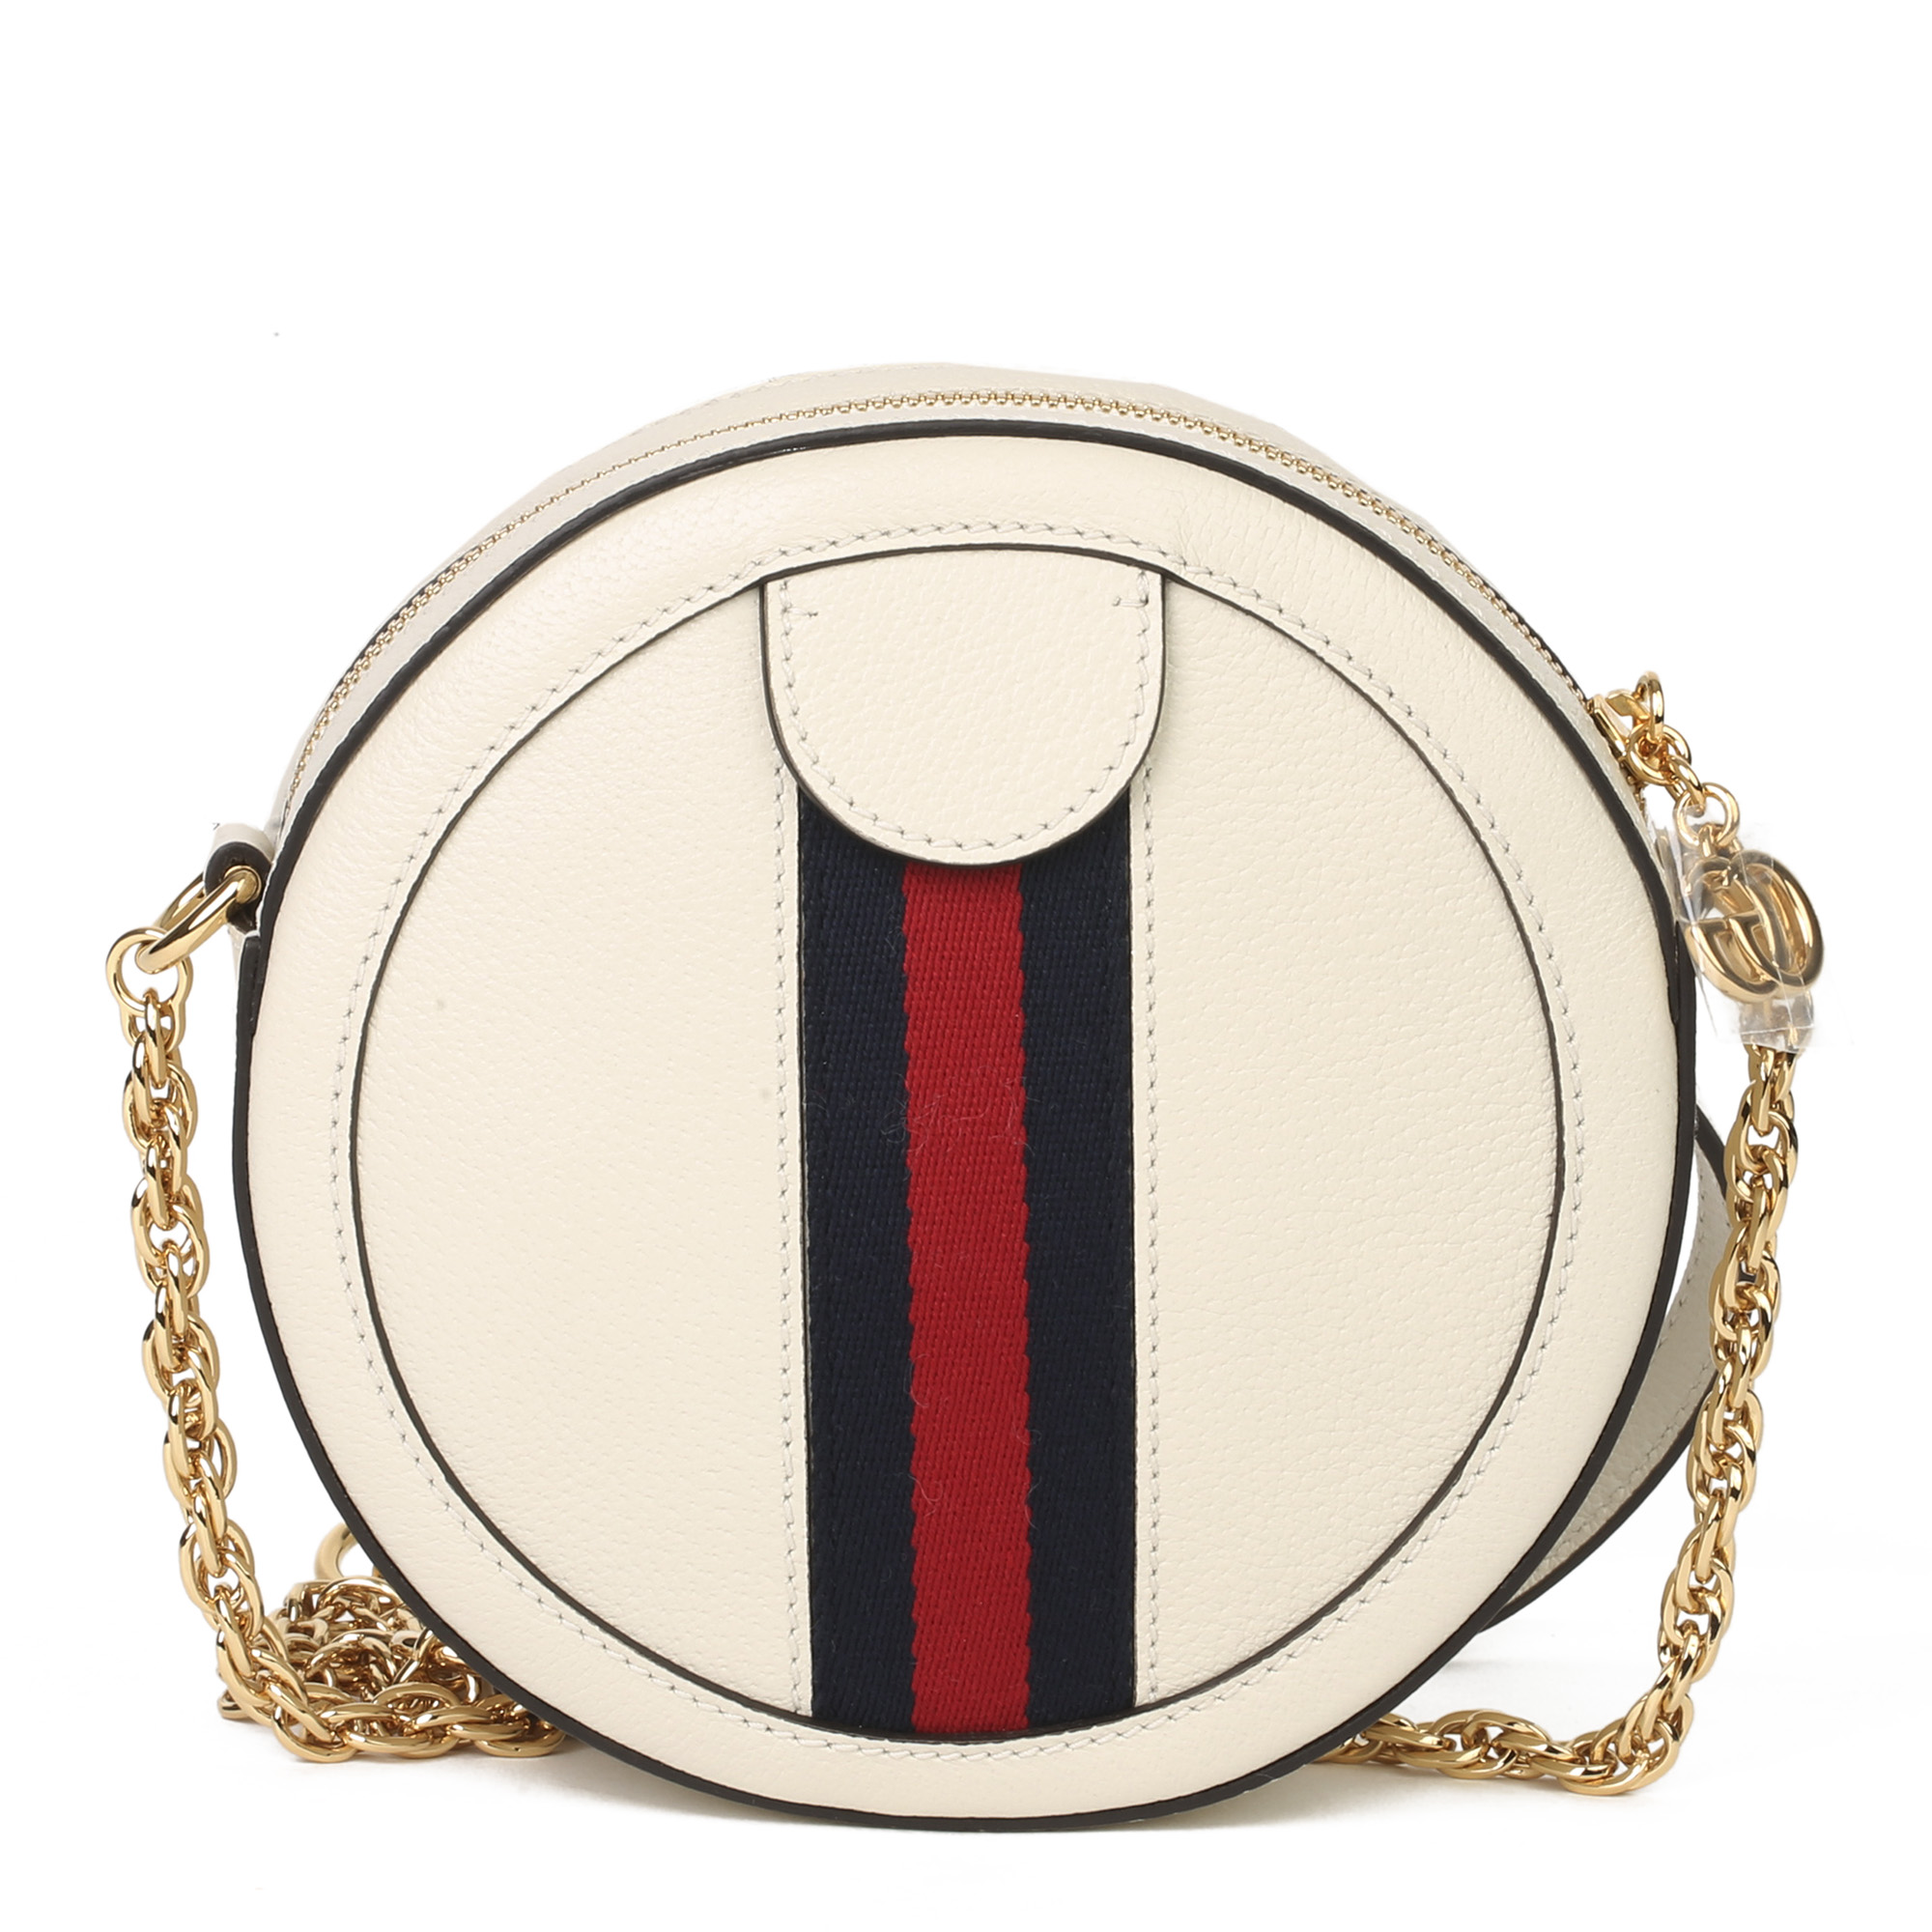 Gucci White Pigskin Leather Web Mini Round Orphidia Shoulder Bag - Image 9 of 11